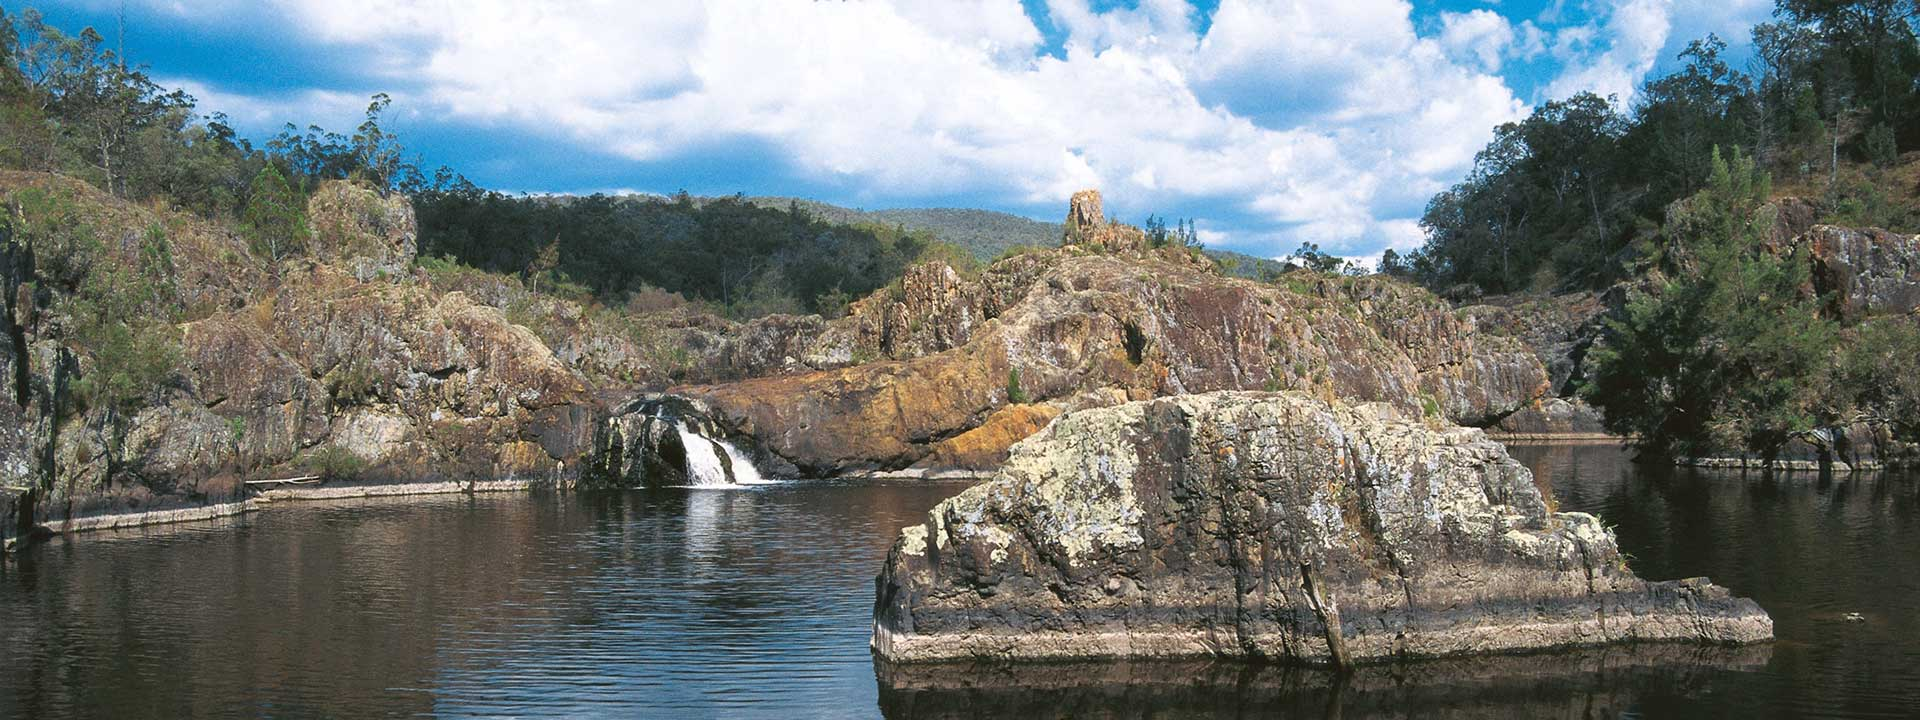 Visit the Severn River Waterfall in Southern Queensland